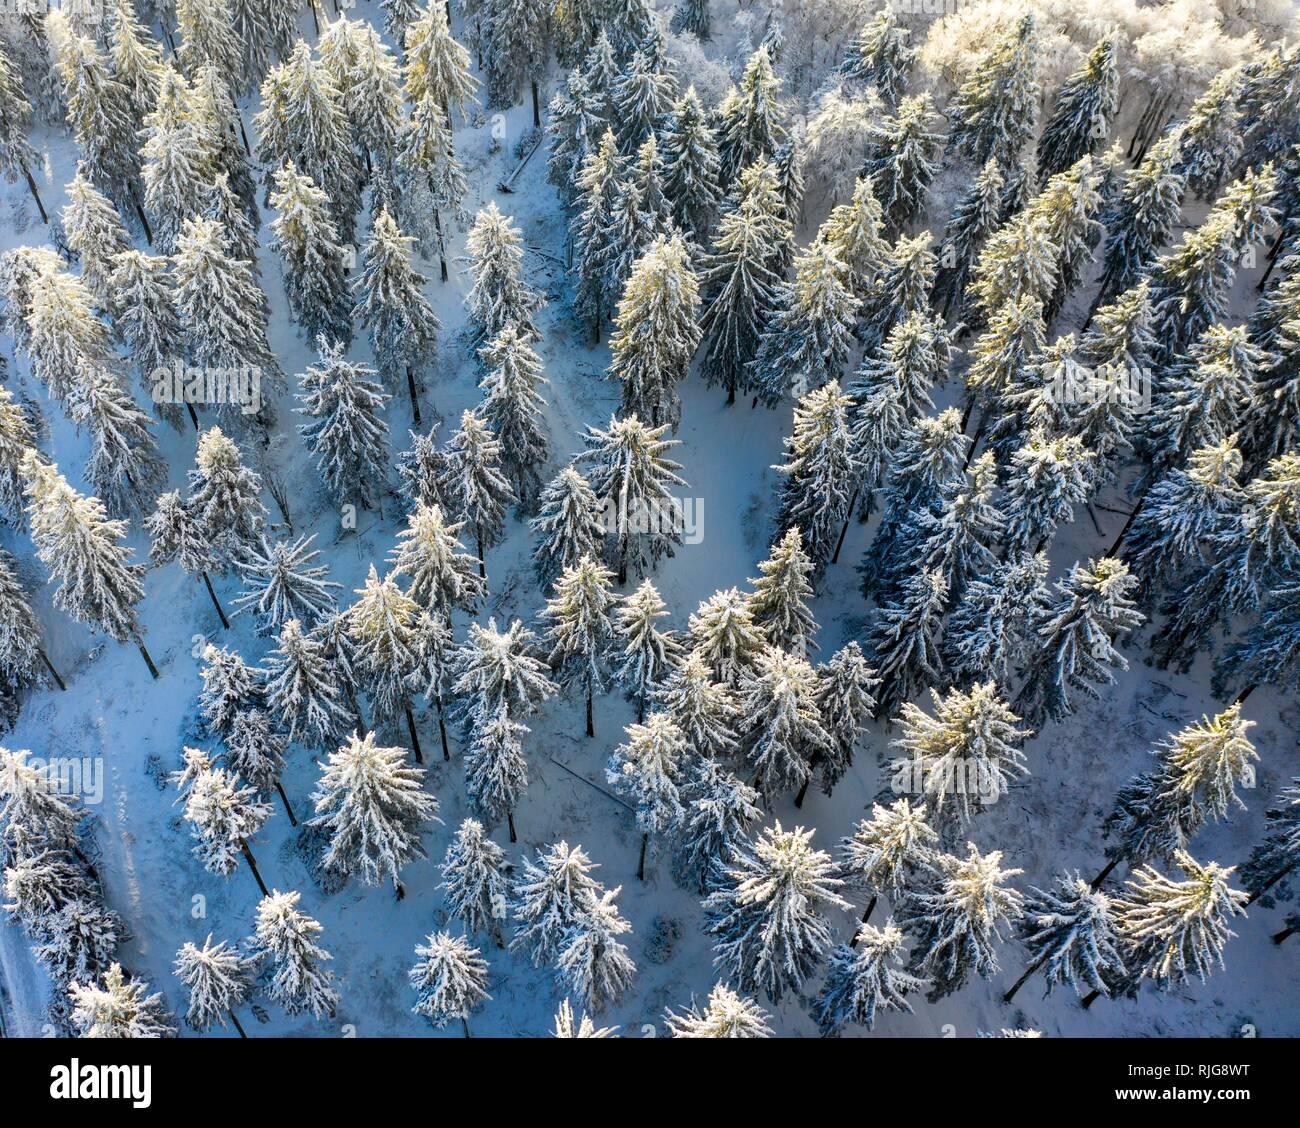 Drones shot, snow-covered Spruces (Picea) from above in winter, Taunus, Hesse, Germany Stock Photo